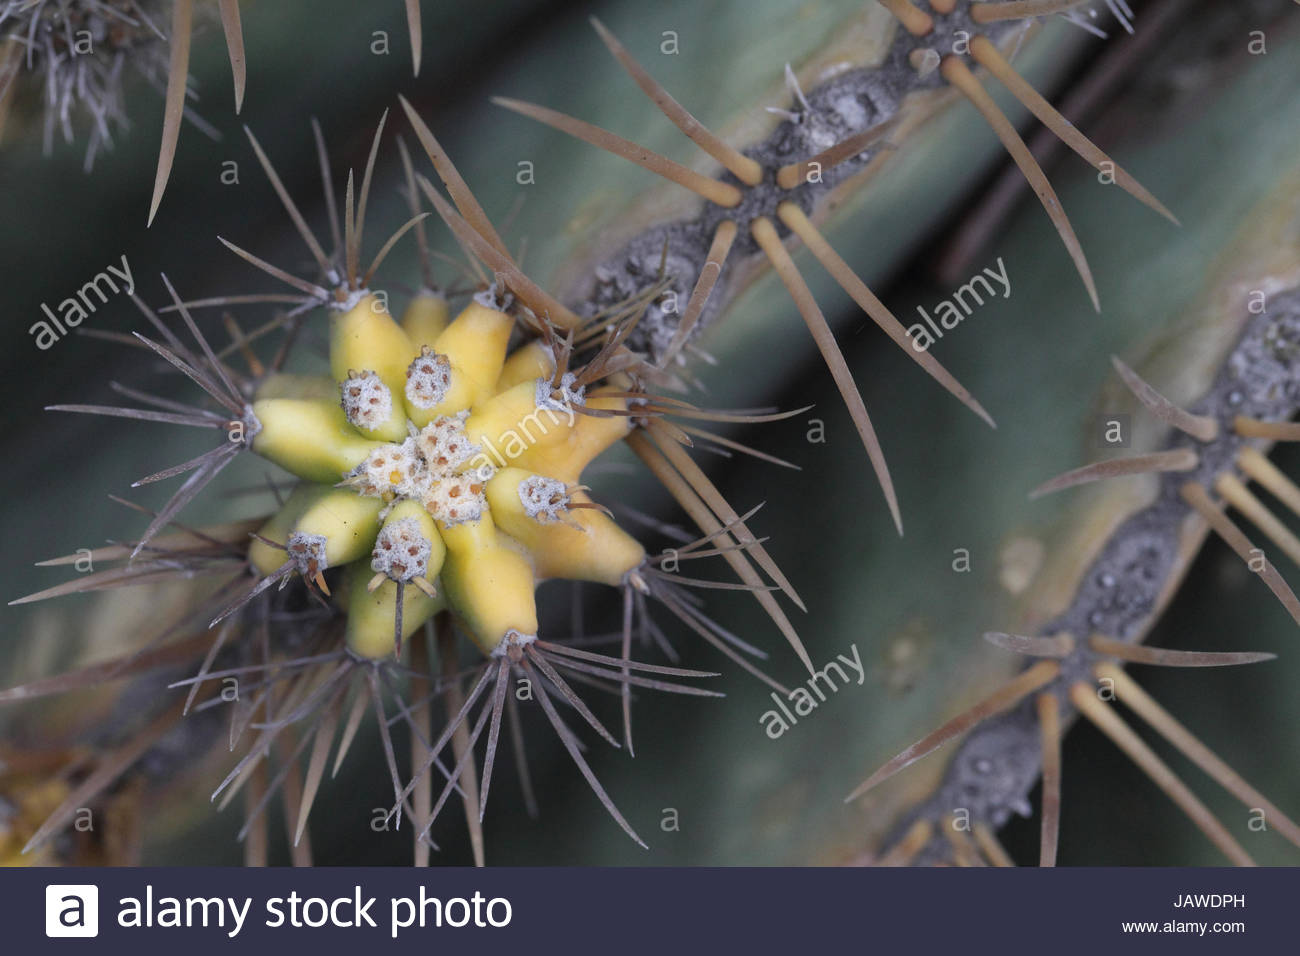 Bud and spines of a cactus species in a park. - Stock Image